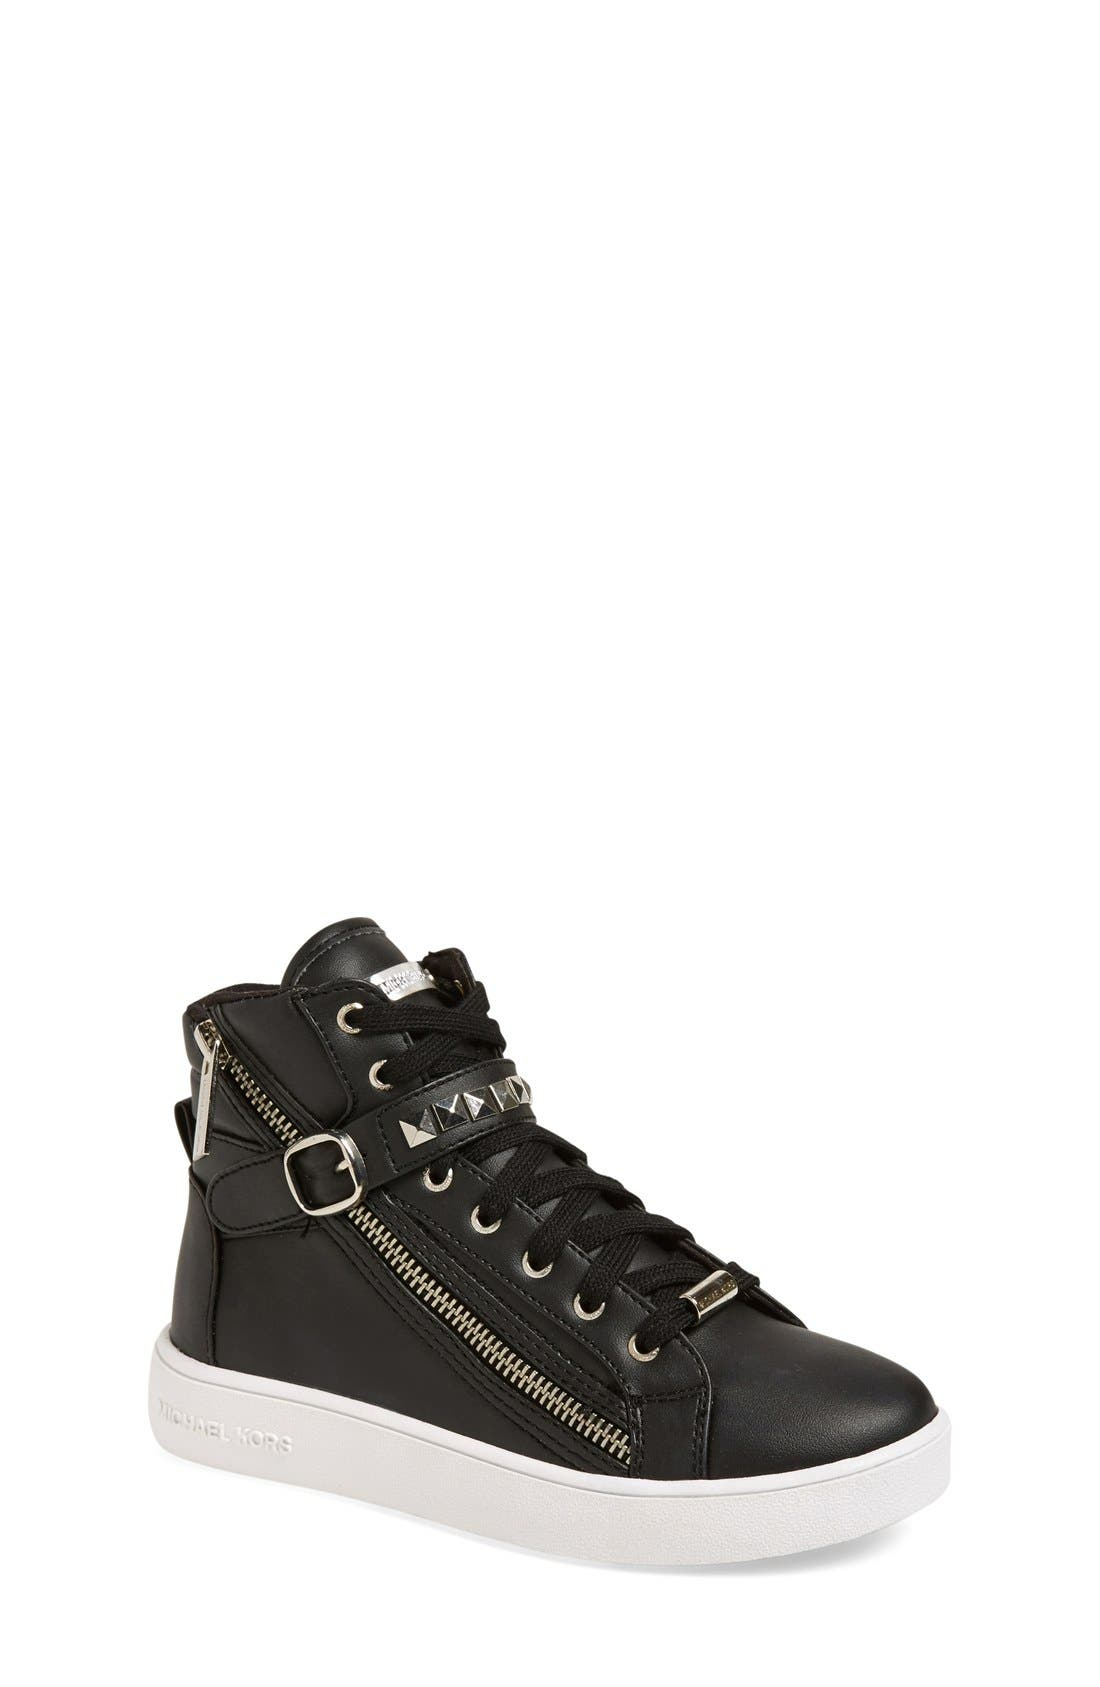 'Ivy Rory' High Top Sneaker,                         Main,                         color, 001